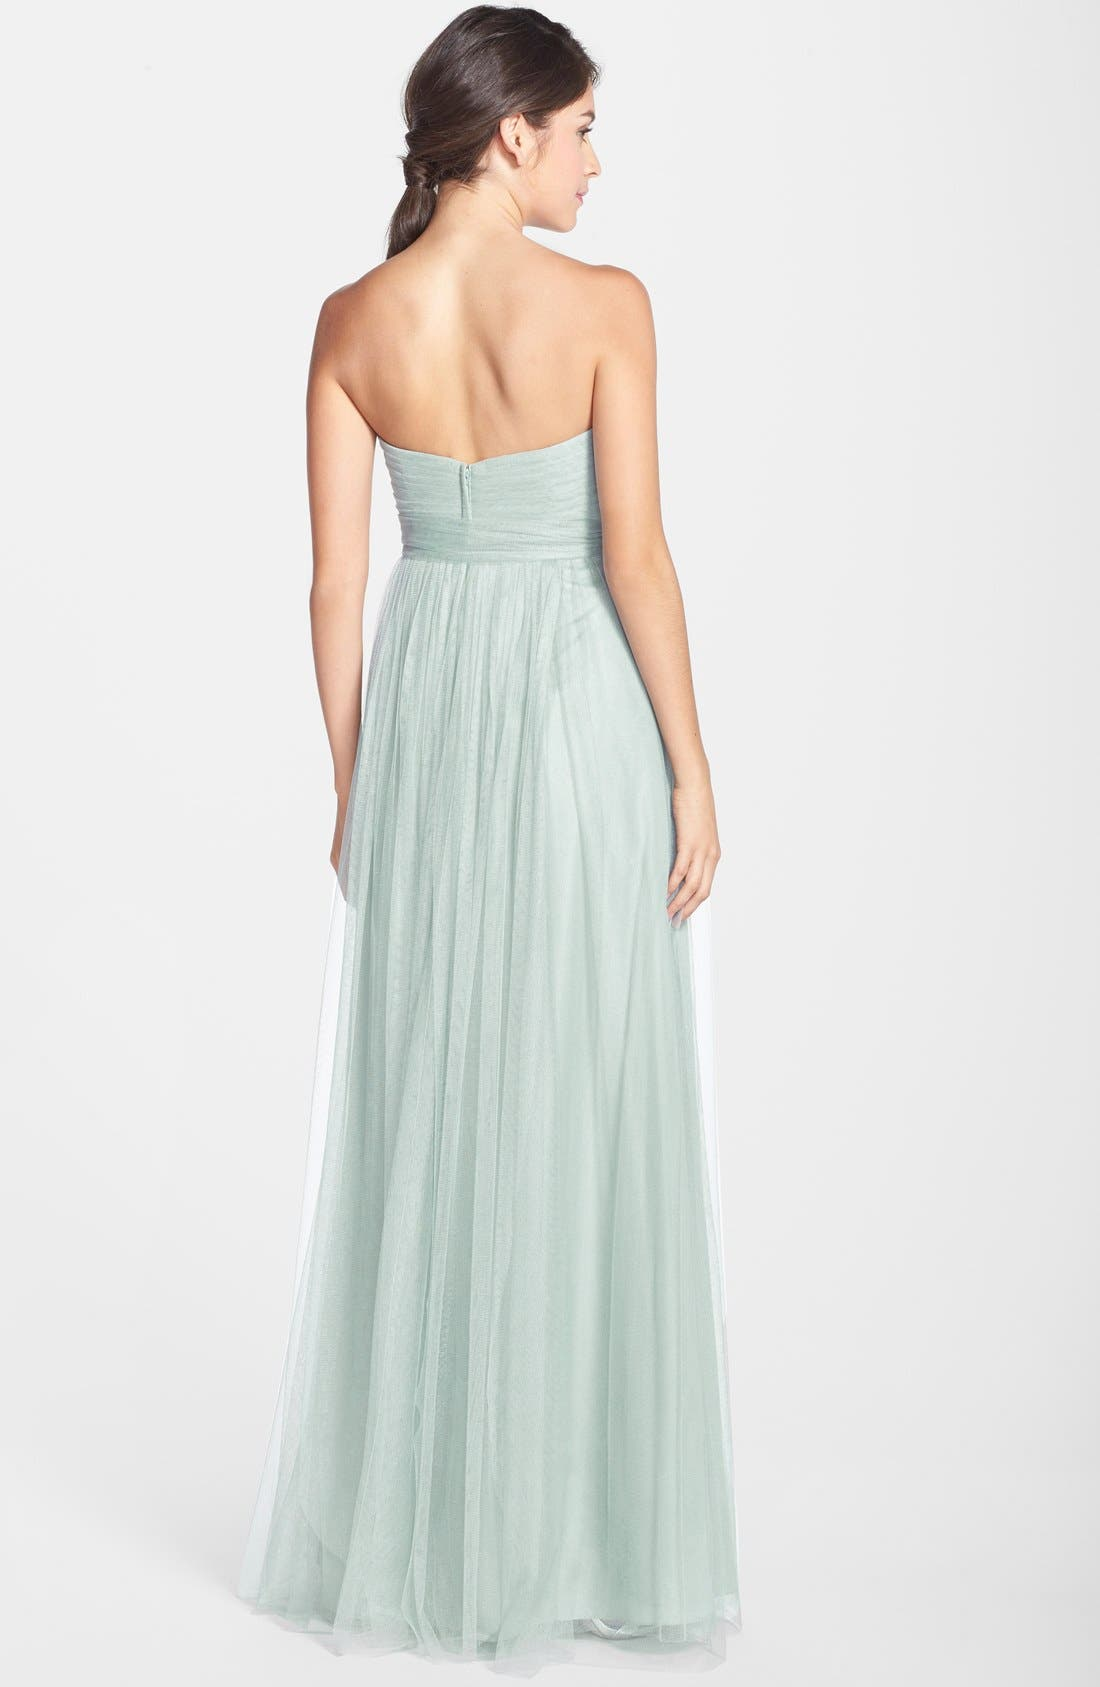 Annabelle Convertible Tulle Column Dress,                             Alternate thumbnail 111, color,